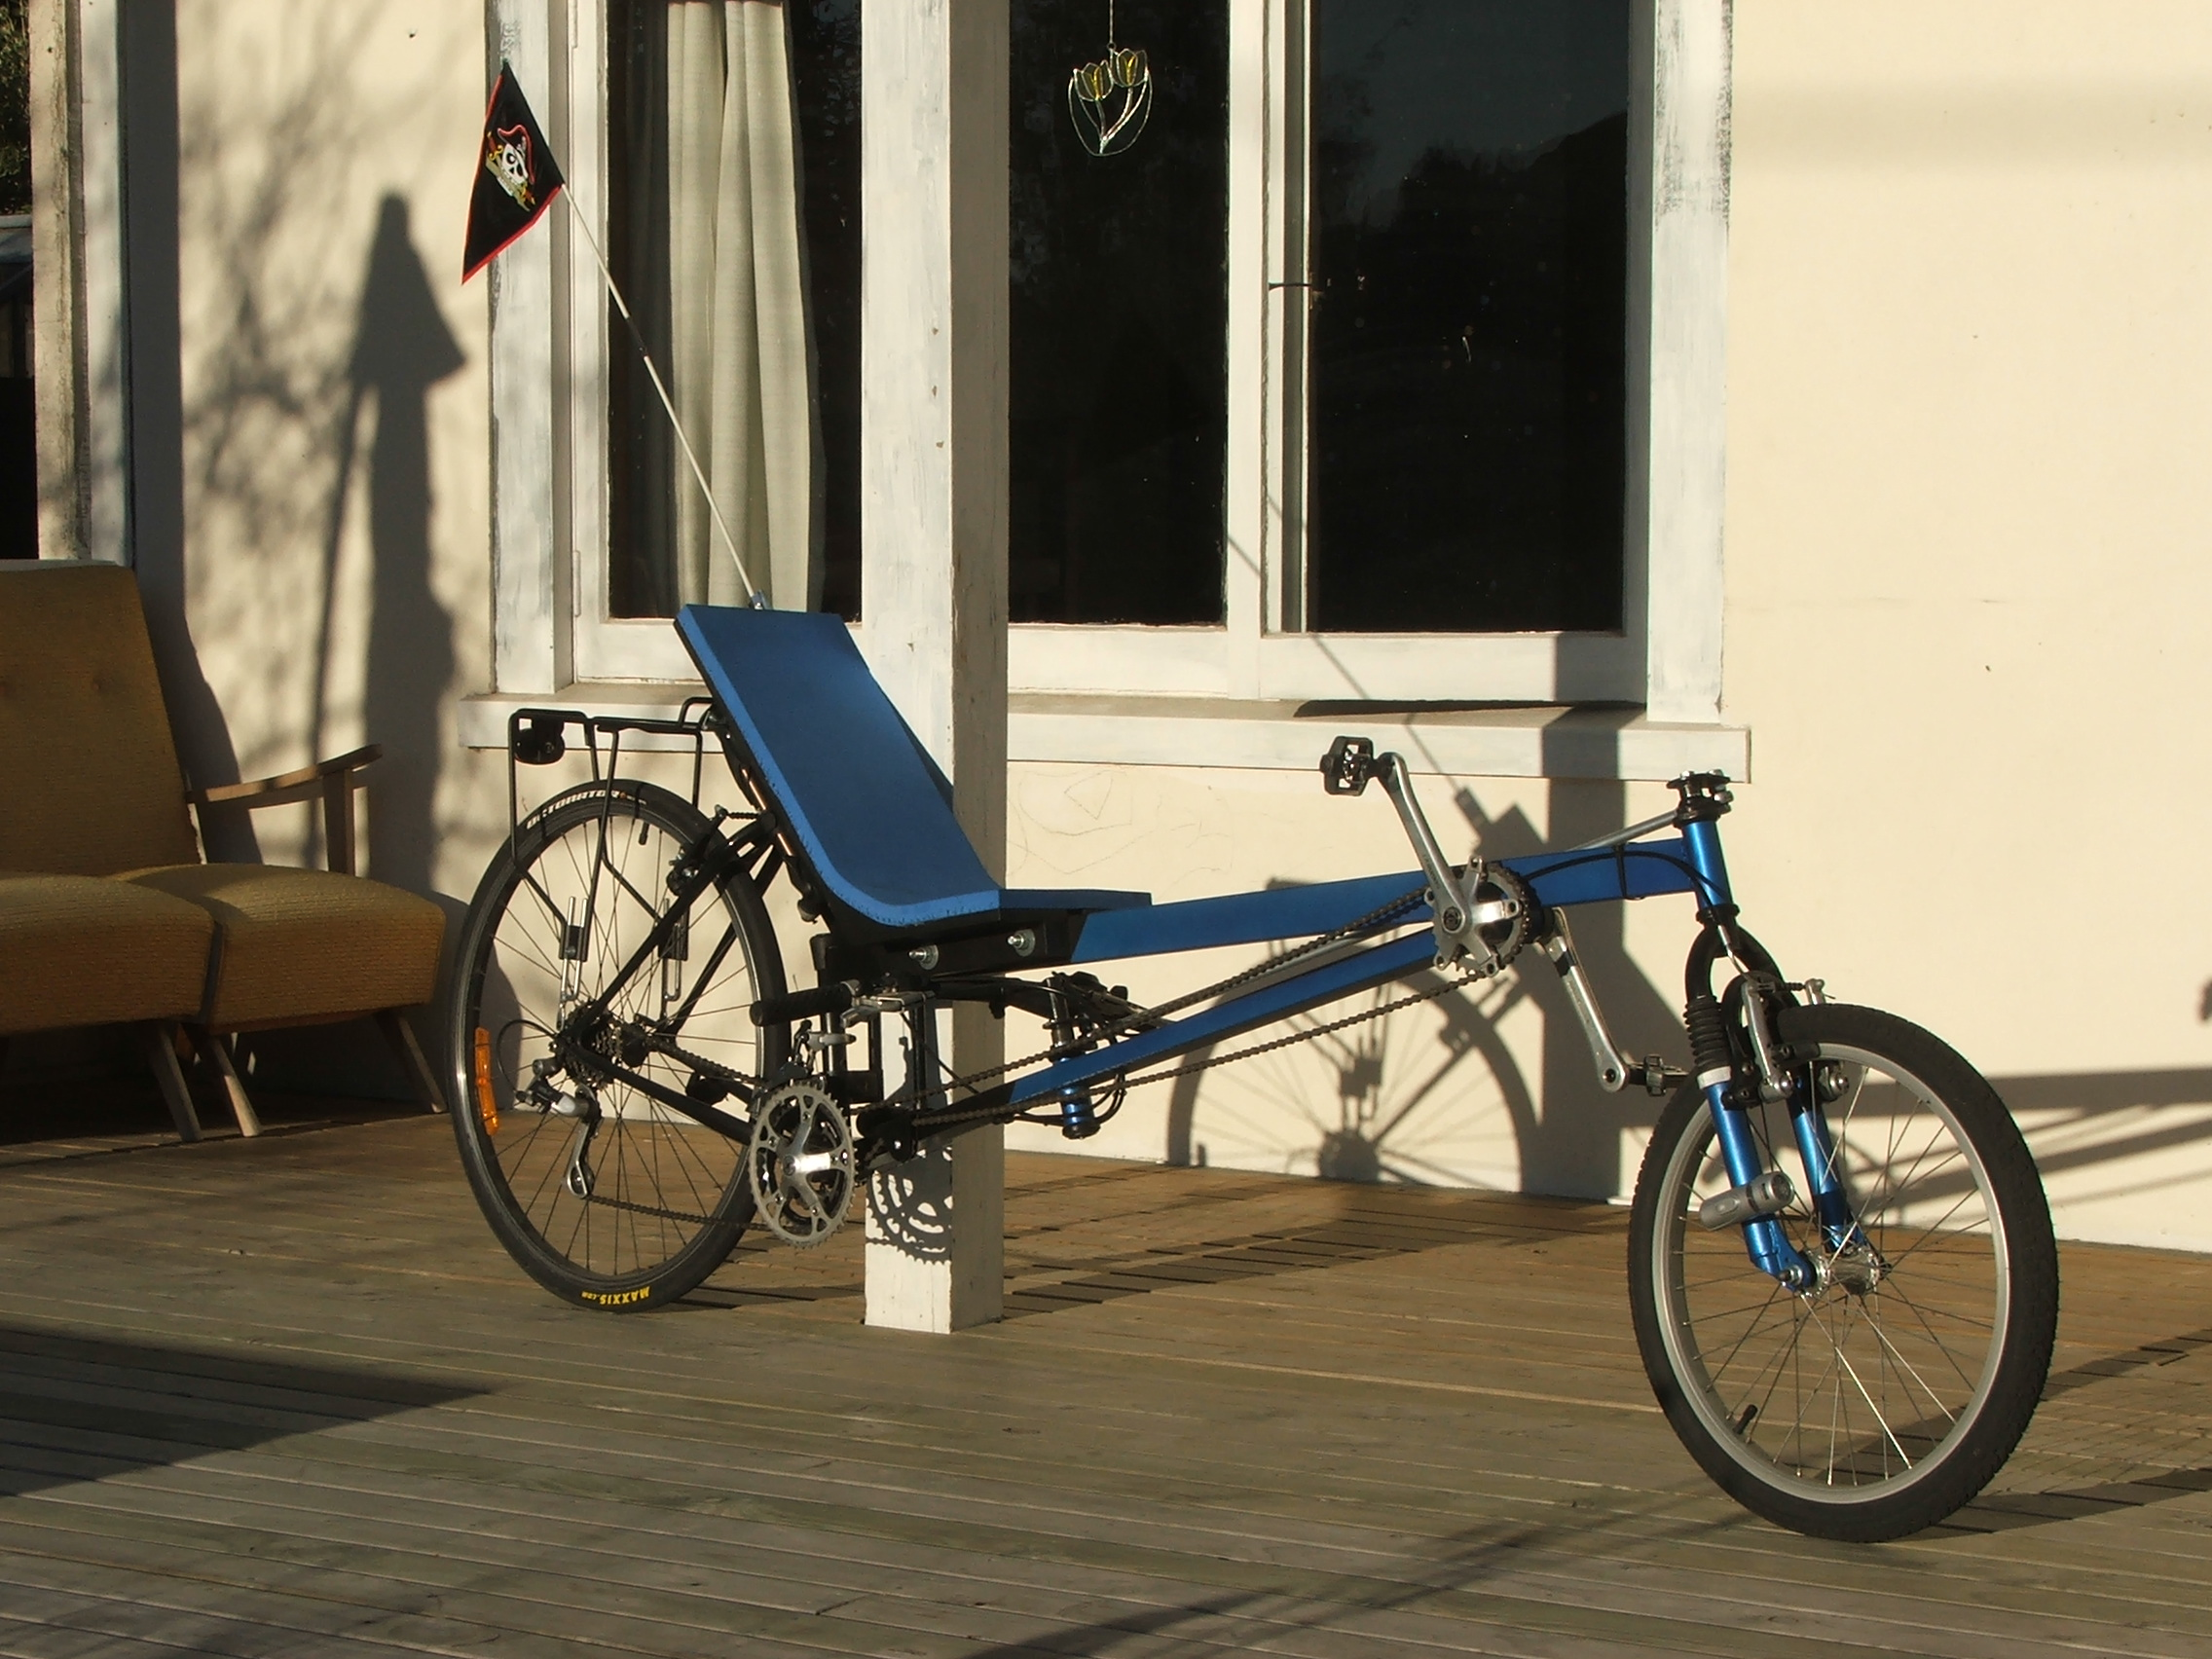 Rec-liner long wheel base recumbent